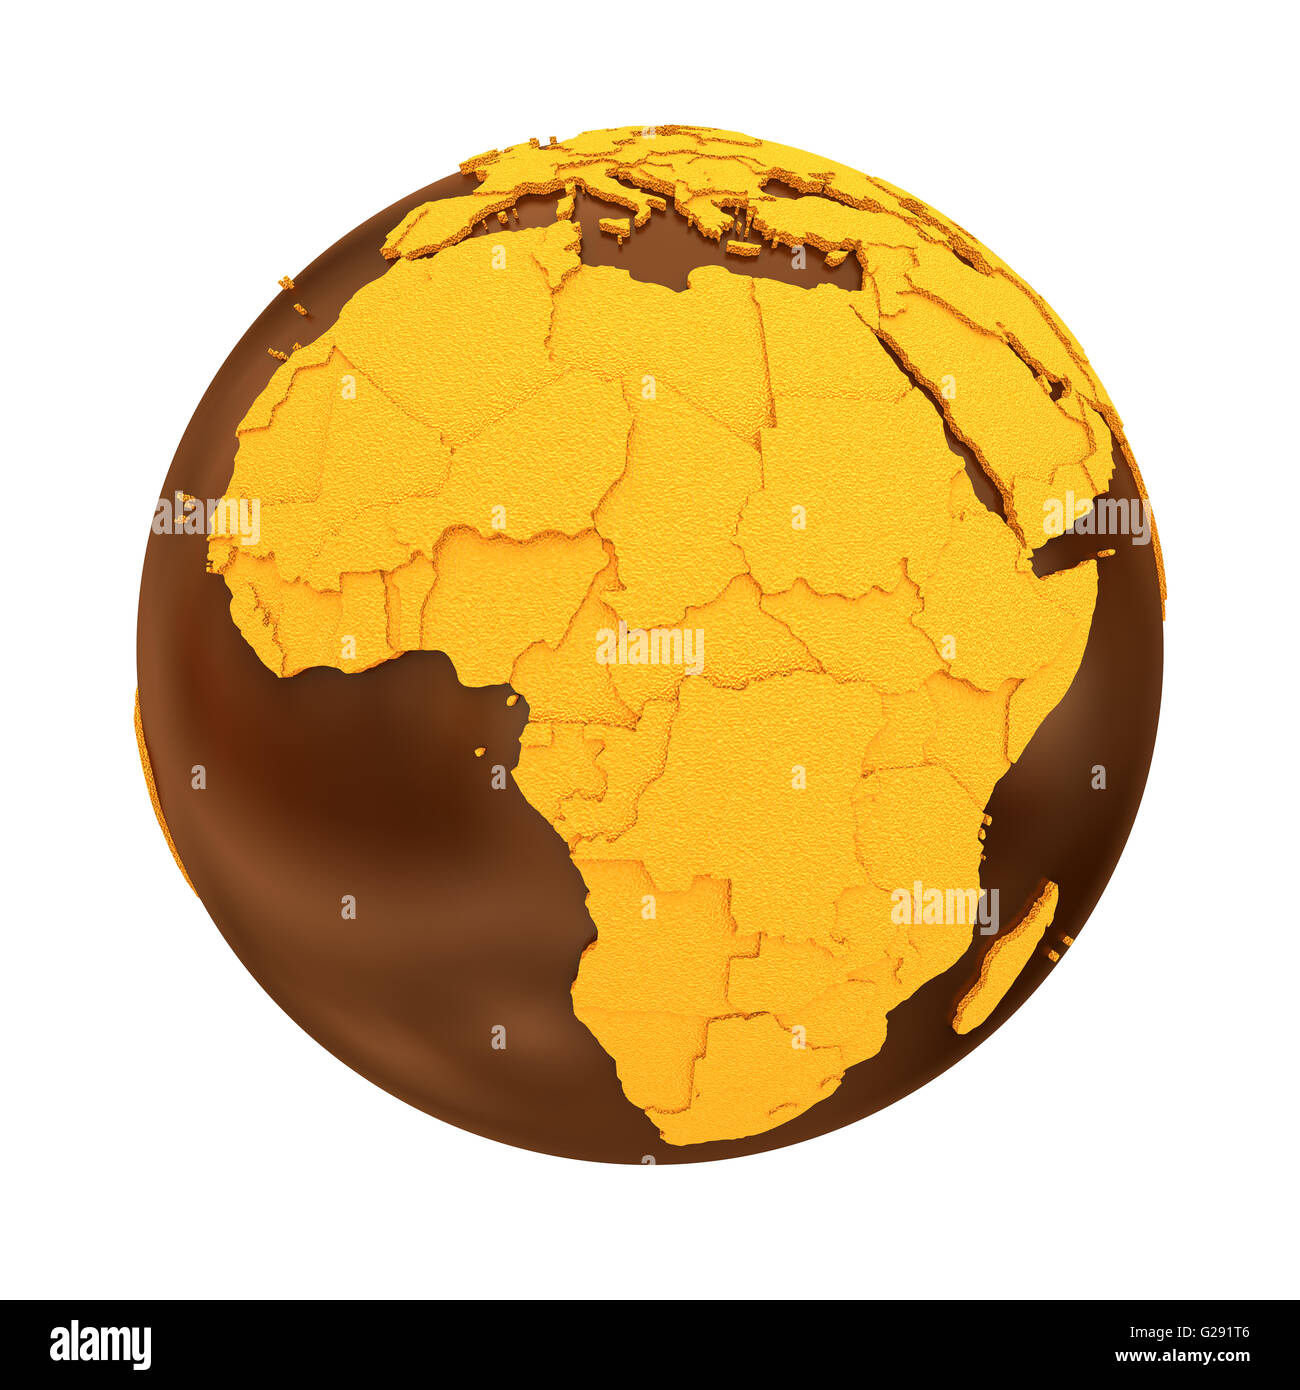 Africa on chocolate model of planet Earth. Sweet crusty continents ...